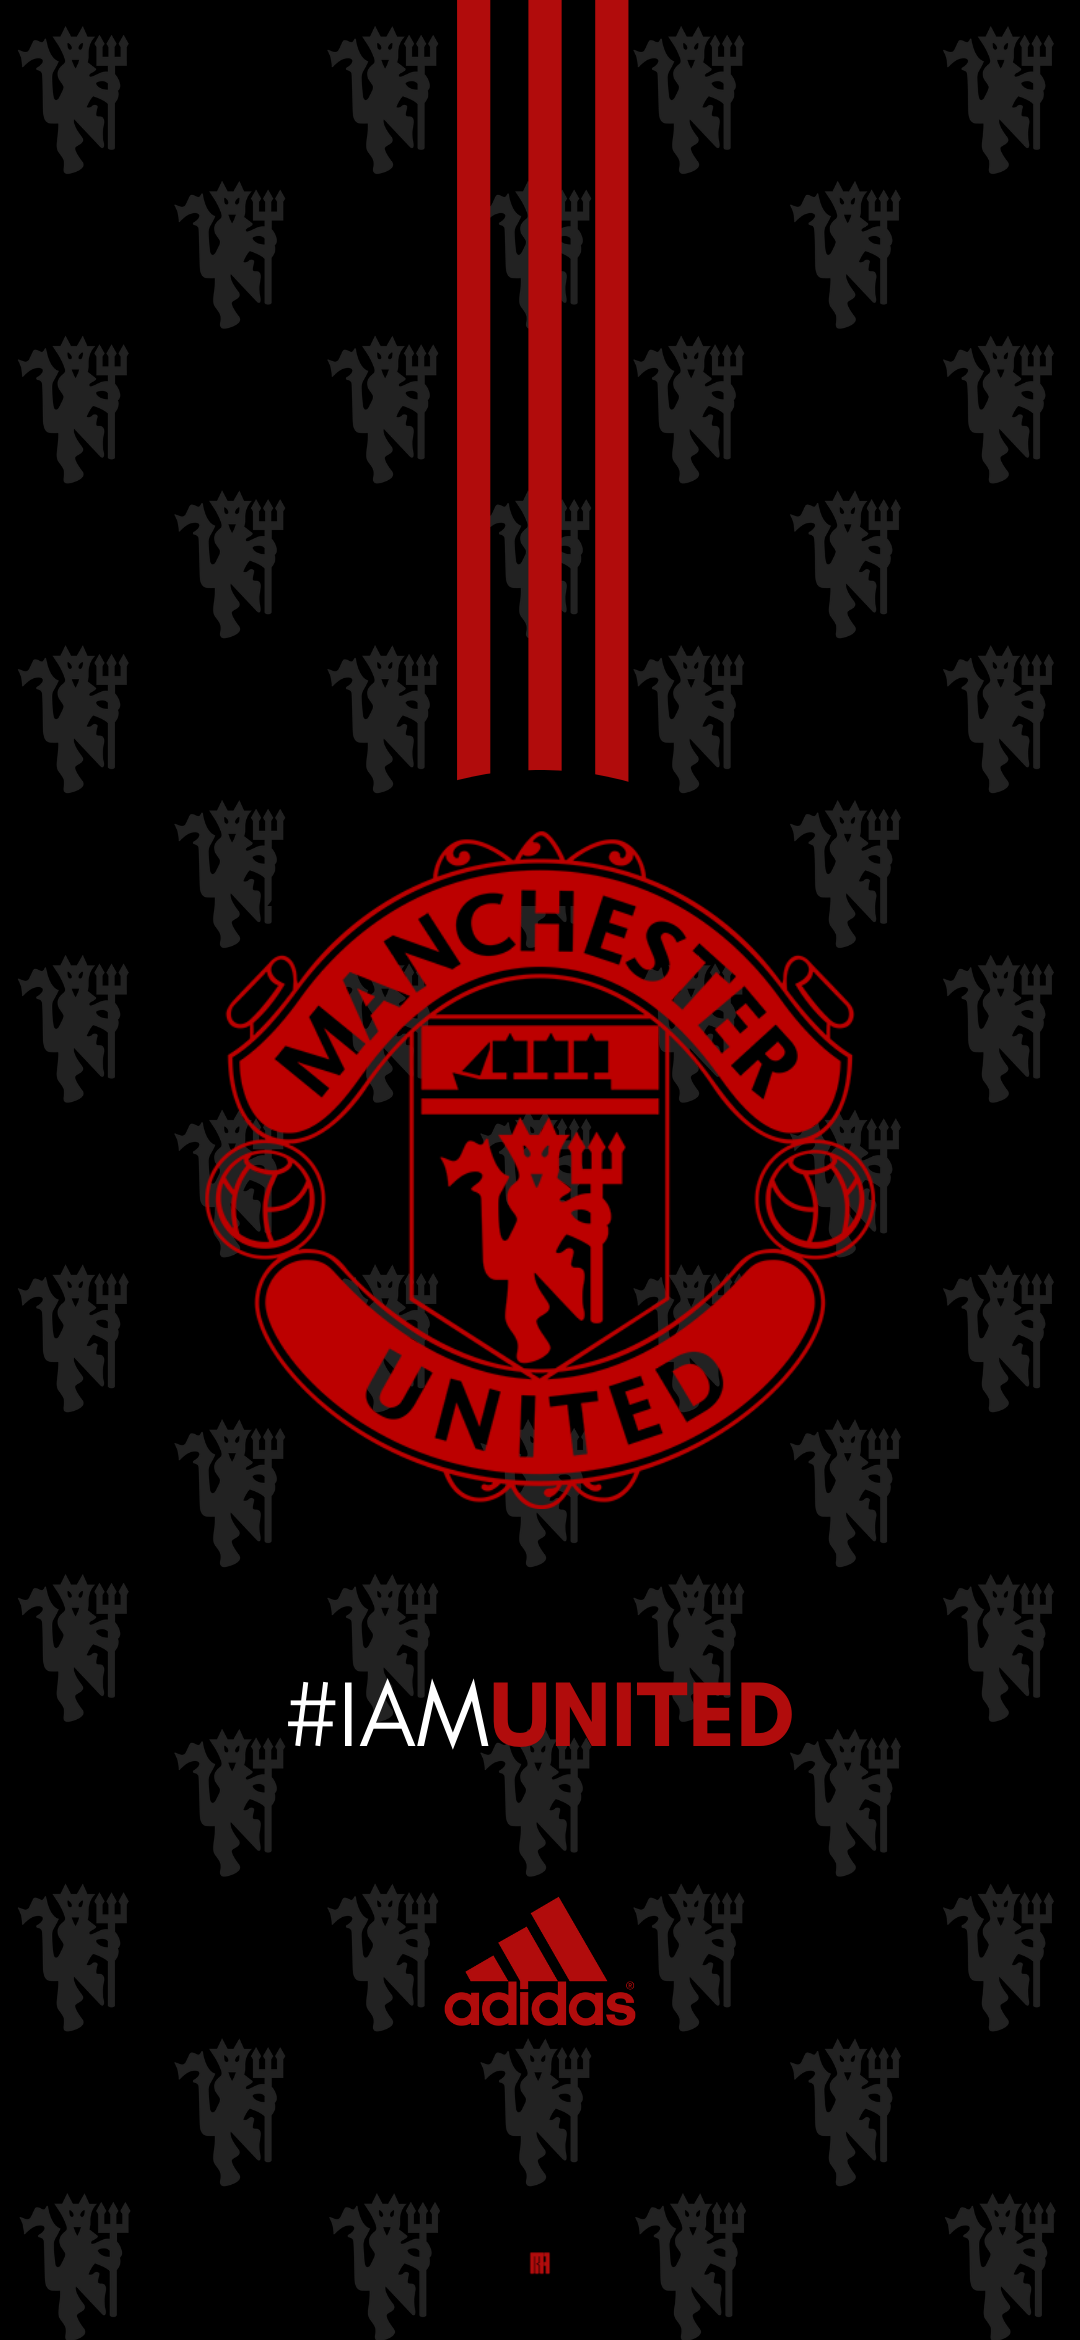 Manchester United Wallpaper Edit Di 2020 Sepak Bola Gambar Wallpaper Ponsel